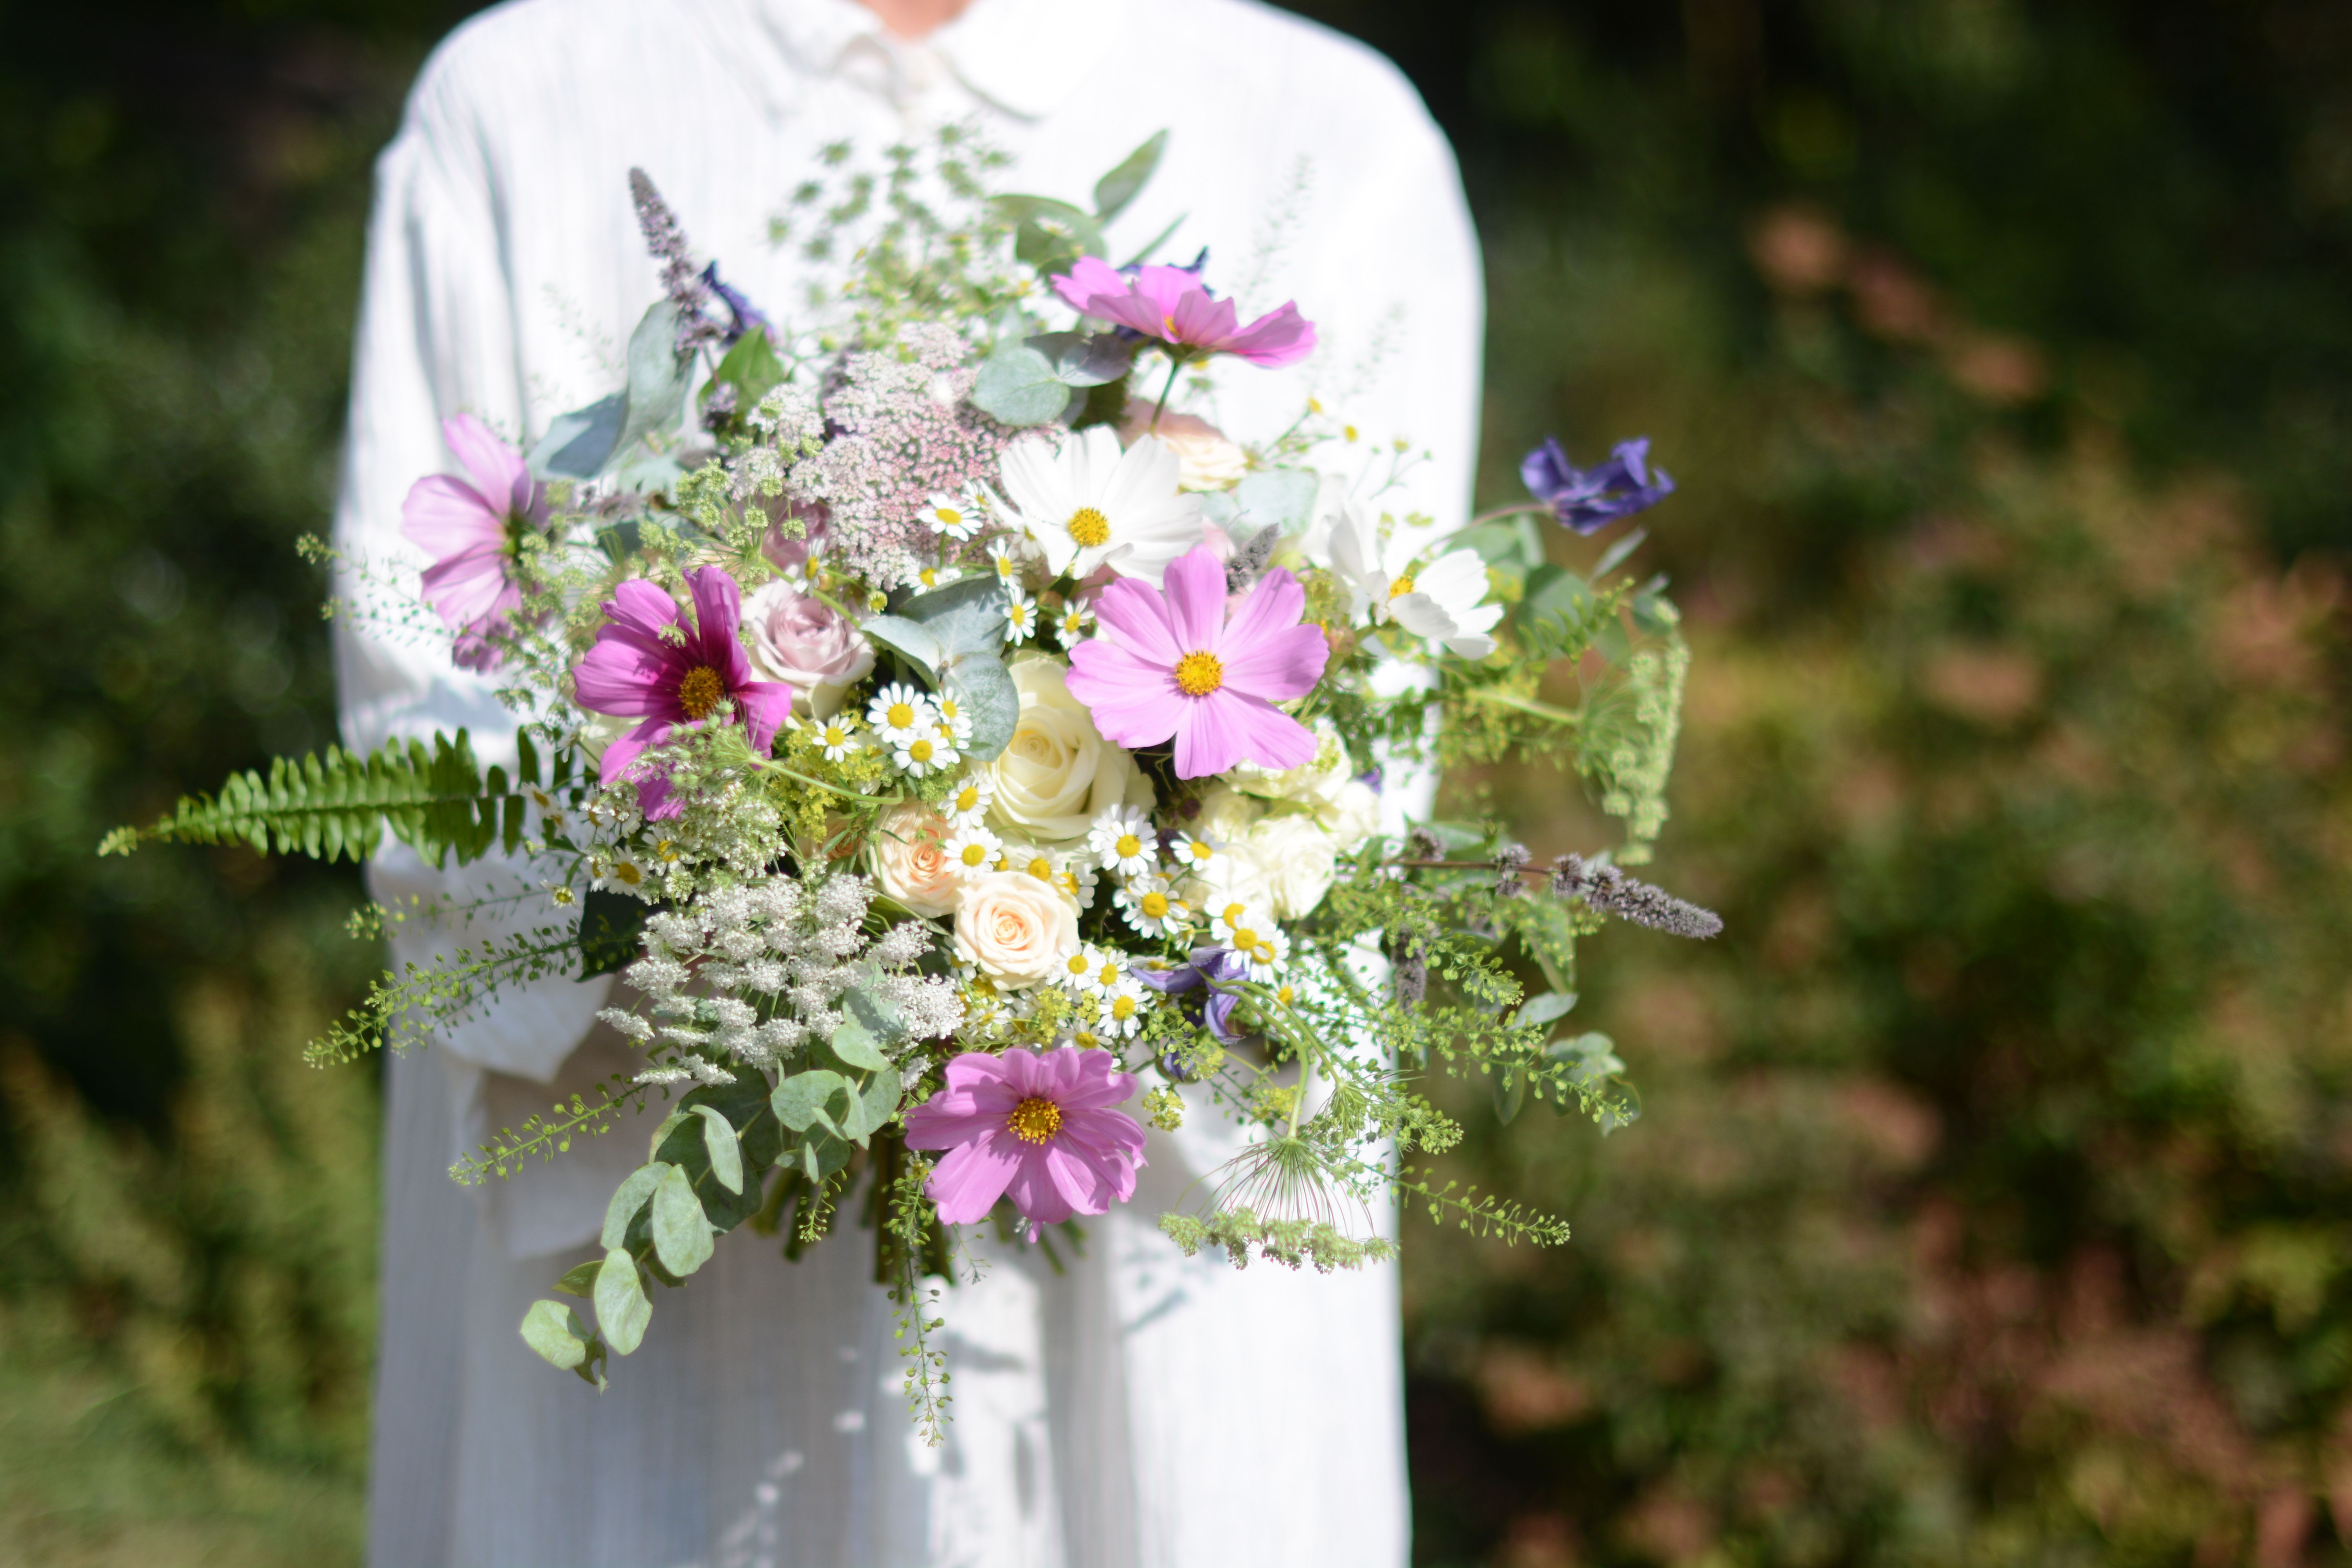 b6858339 Rich textured tonal pink and cream summer flowers with mixed seasonal  greenery